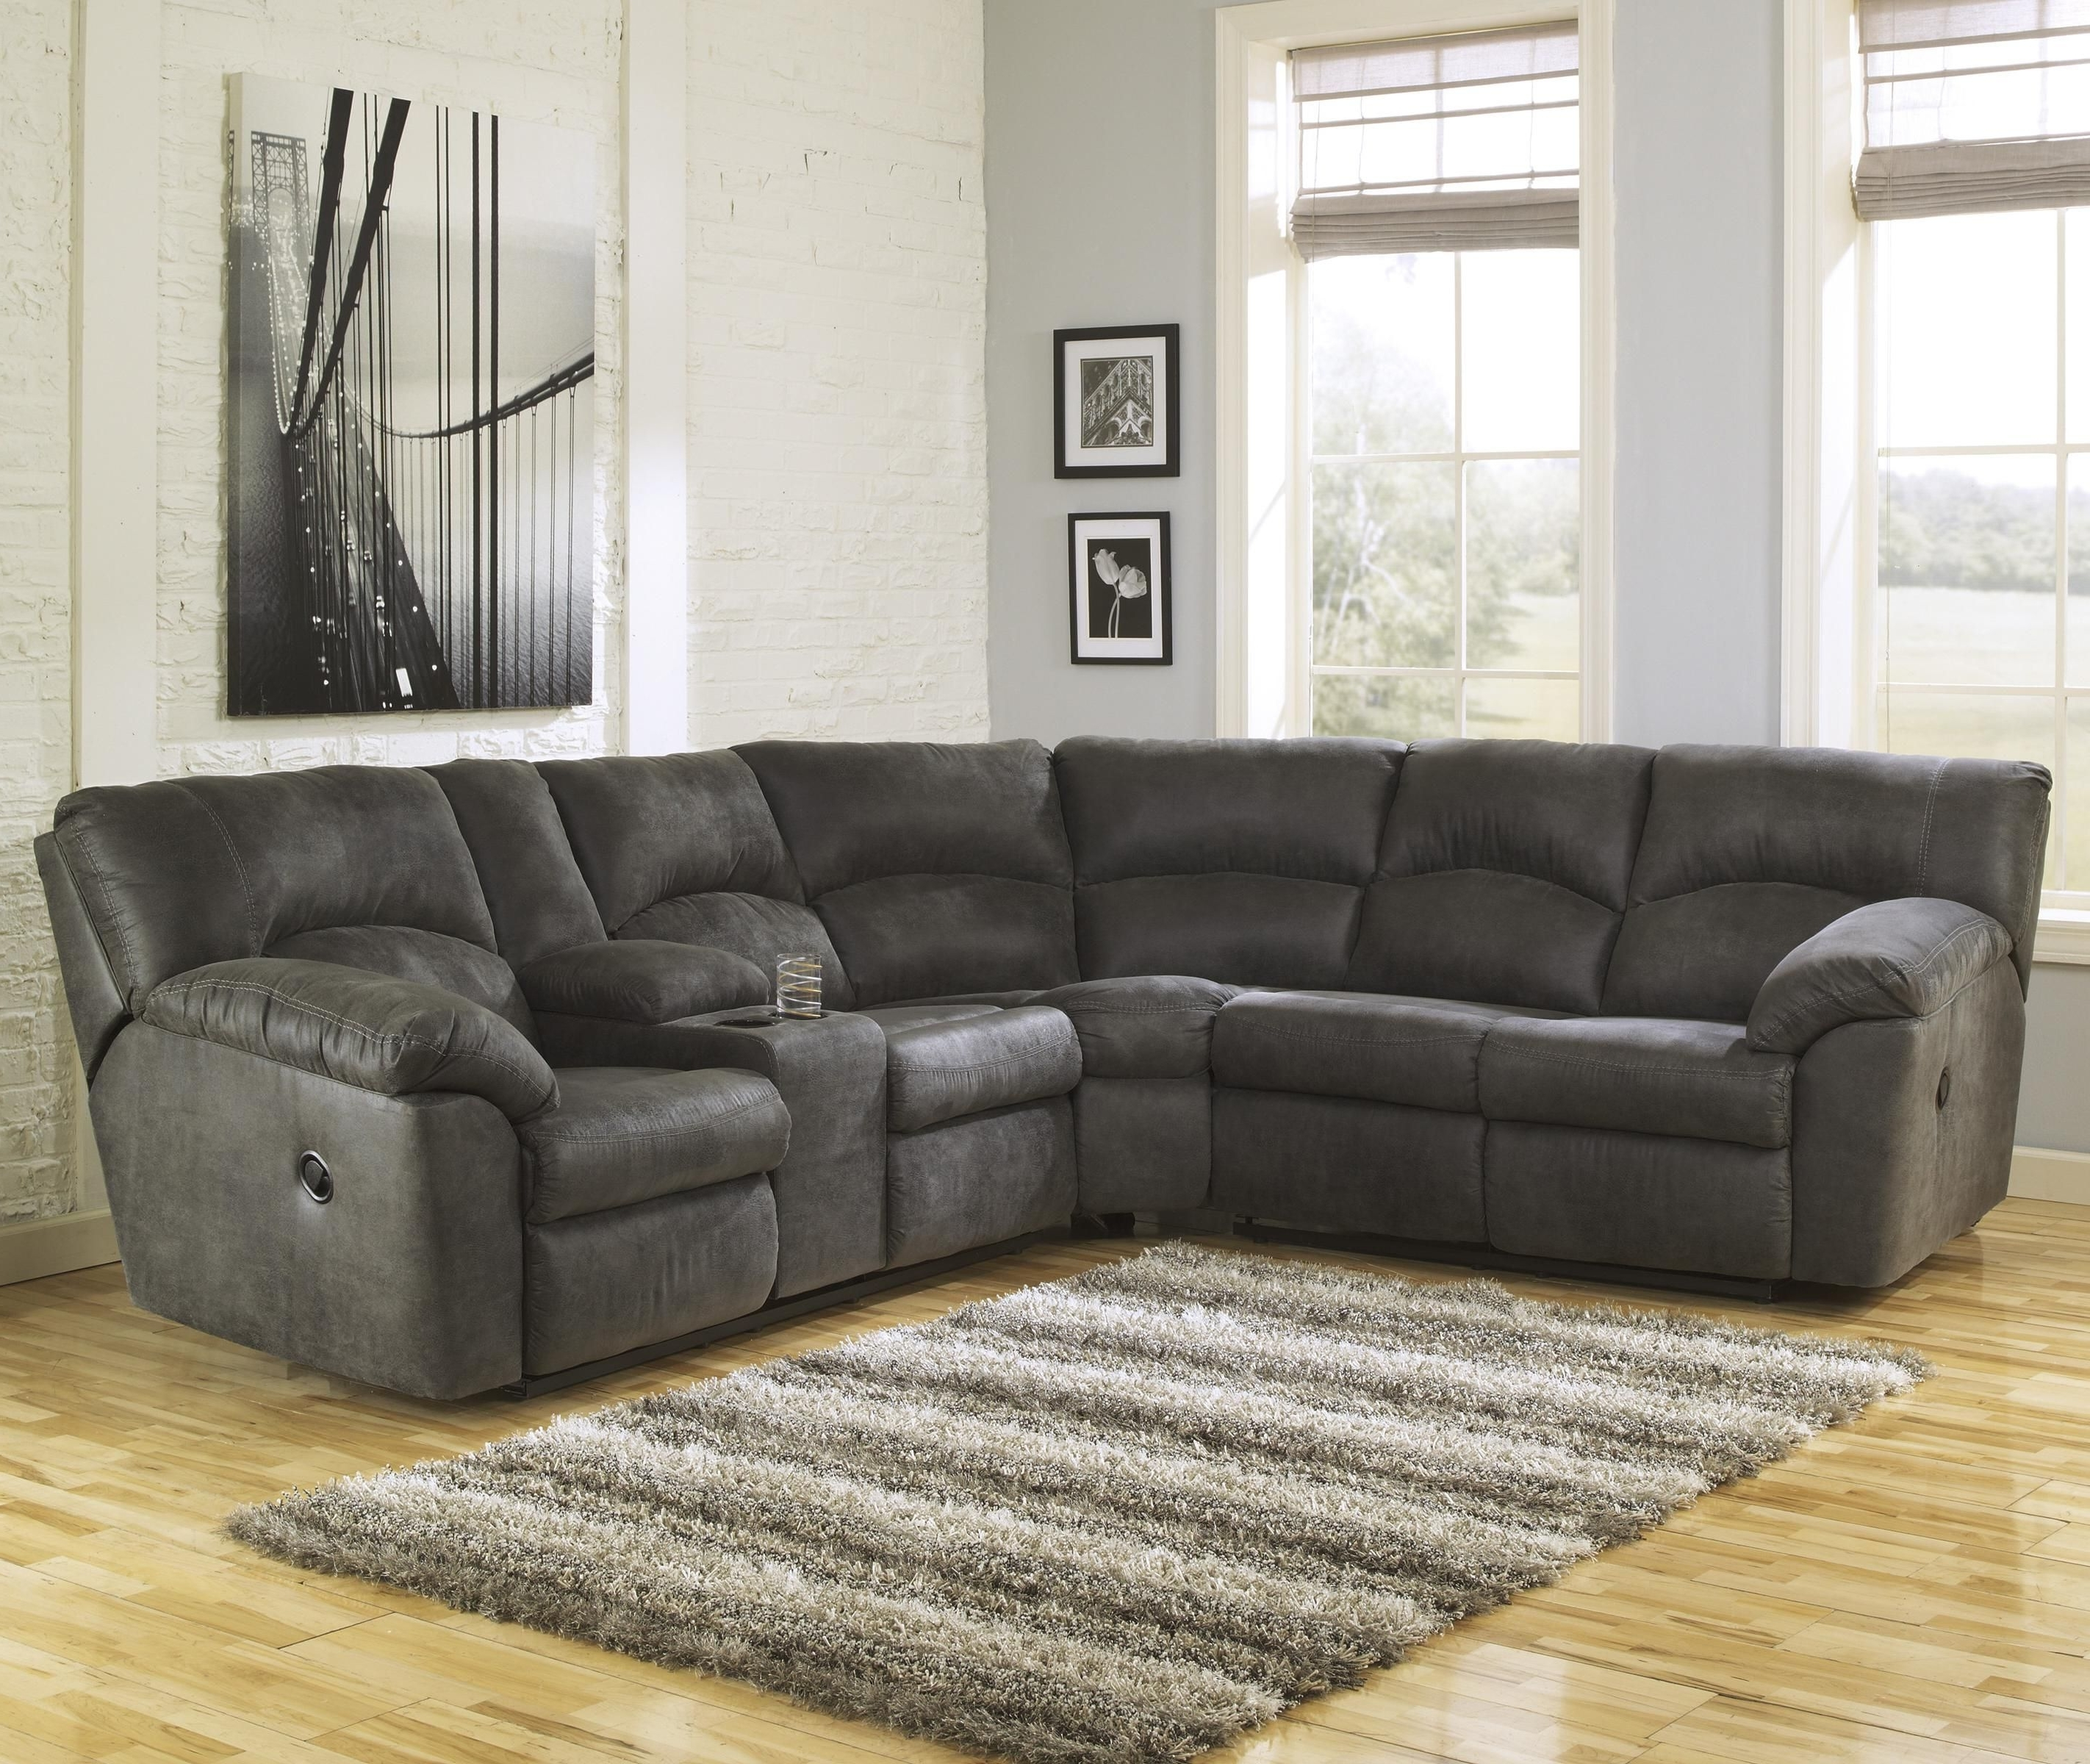 Sam Levitz Sectional Sofas Pertaining To Well Known Tambo – Pewter 2 Piece Reclining Corner Sectional With Center (View 6 of 15)